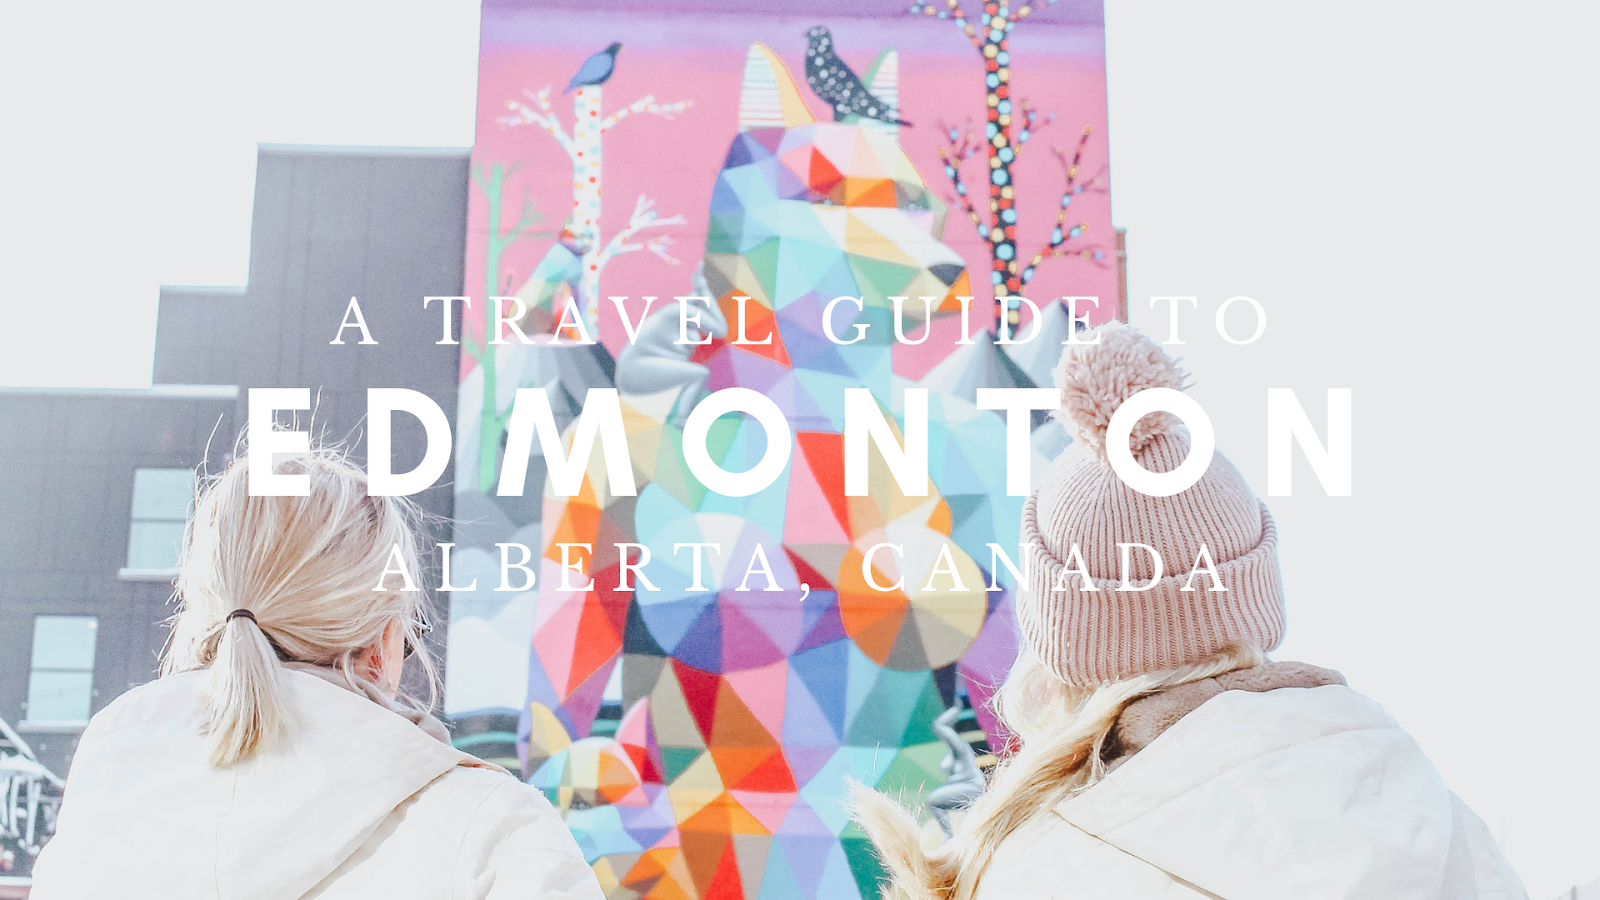 Travel guide to Edmonton, Alberta, Canada